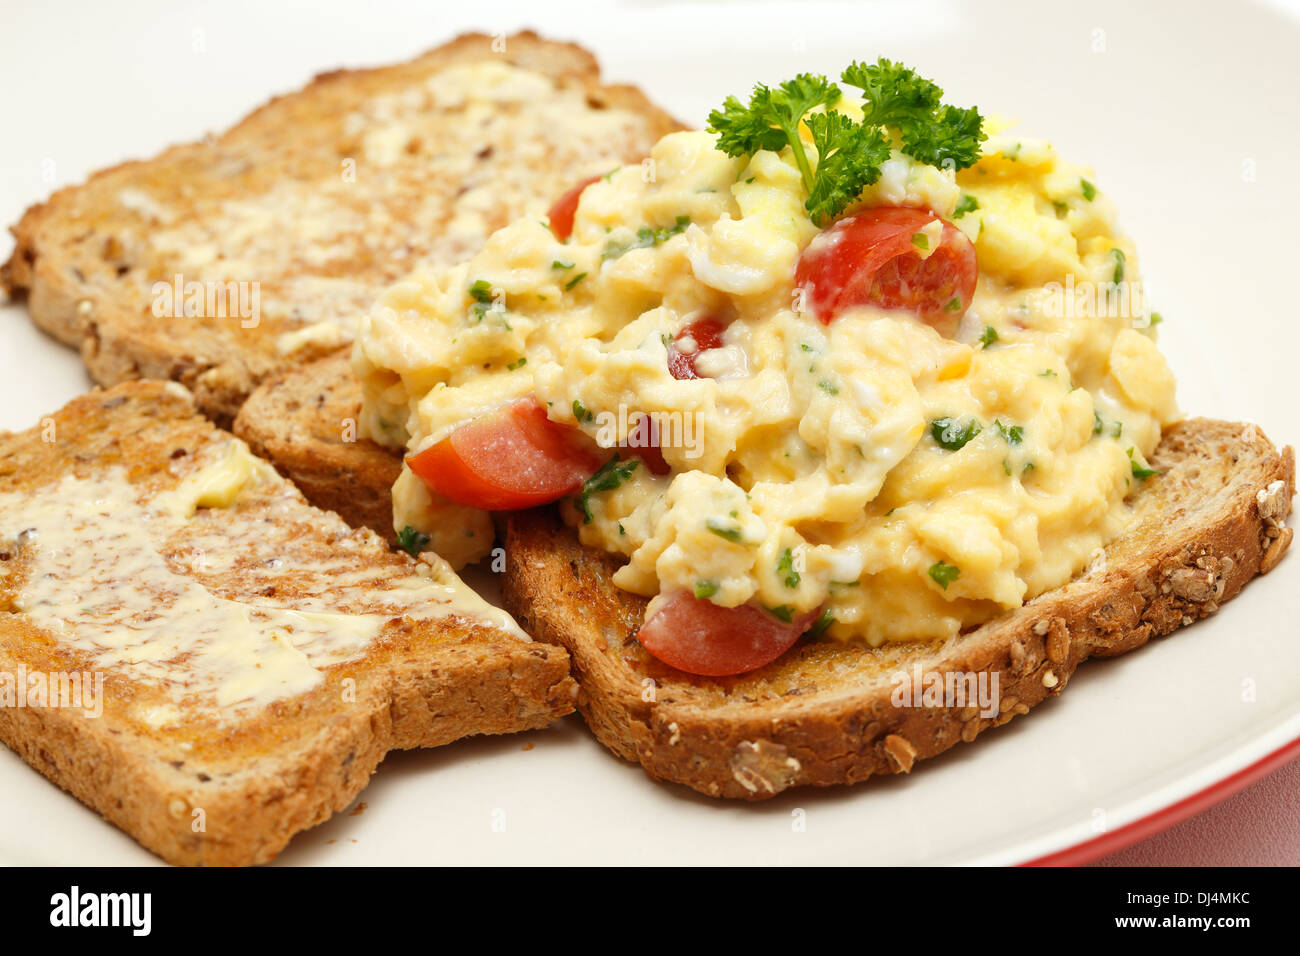 Scrambled Egg On Whole Grain Toast With Parsley And Cherry Tomatoes